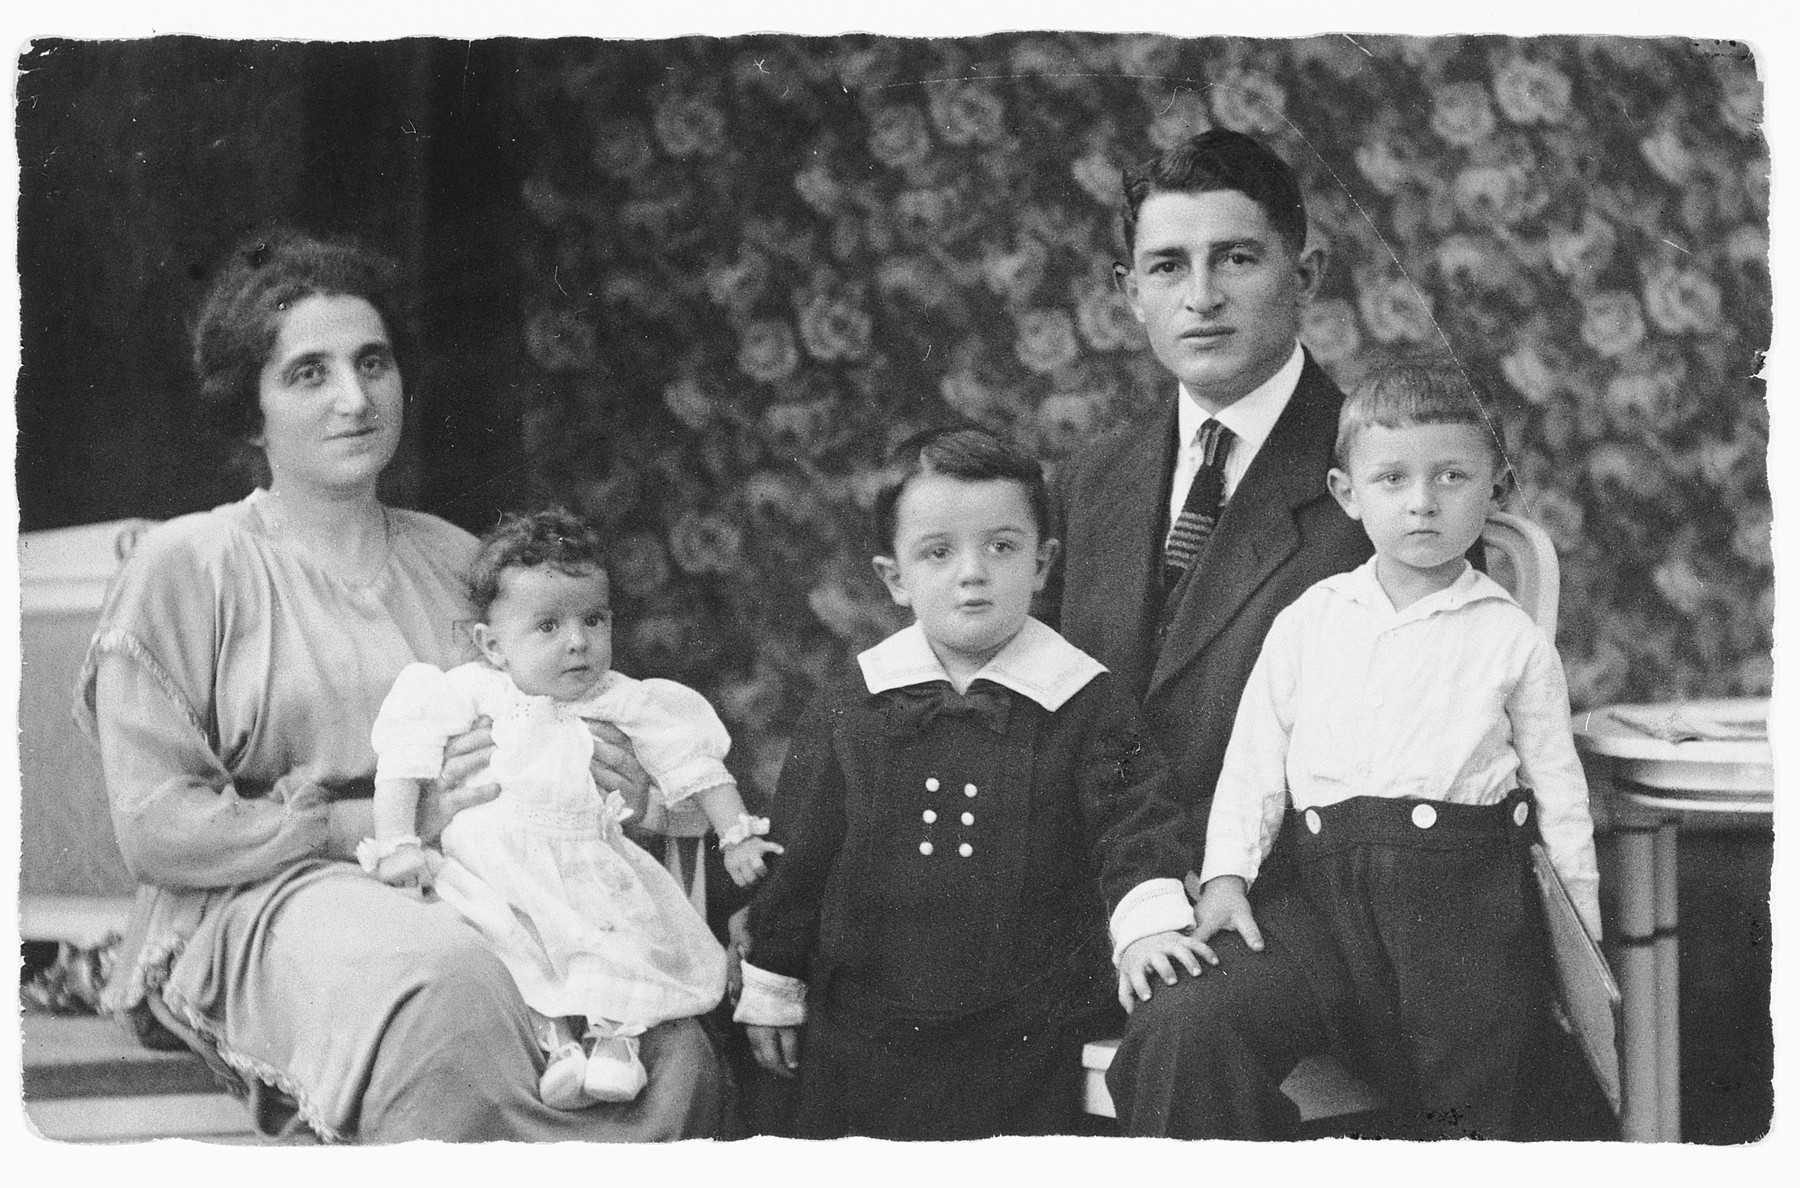 Studio portrait of a prewar German-Jewish family in Bremen.  From left to right are Selma Zwienicki holding her daughter Liesel, Benno, Josef Zwienicki and Gerd.